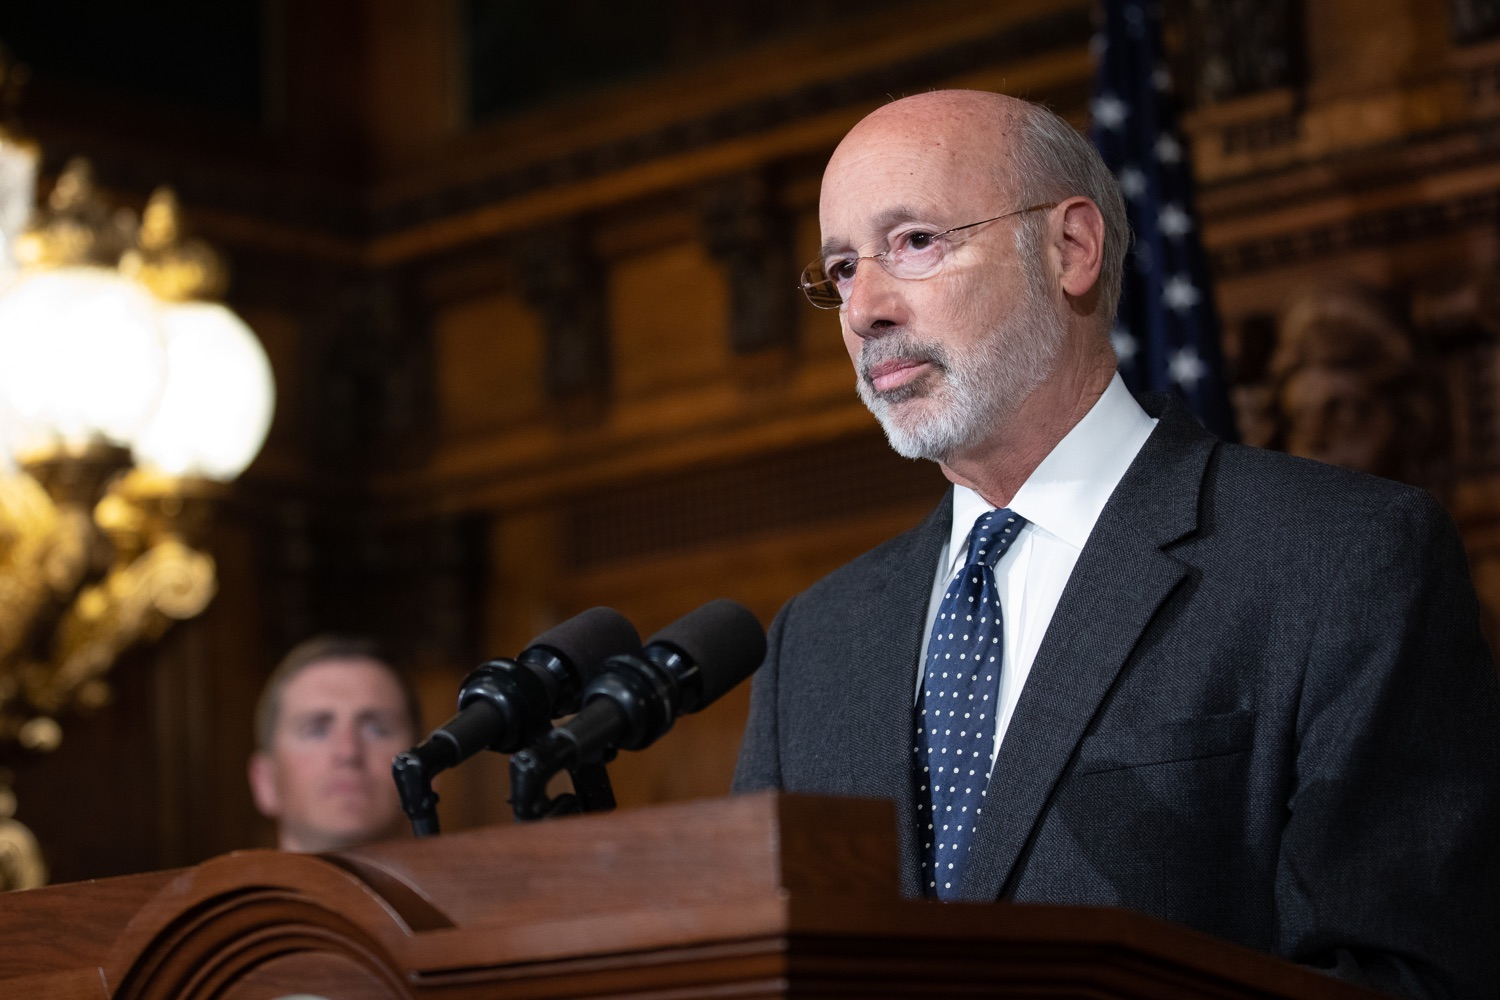 """<a href=""""https://filesource.wostreaming.net/commonwealthofpa/photo/17423_gov_trip_recap_dz_008.jpg"""" target=""""_blank"""">⇣Download Photo<br></a>Harrisburg, PA  Governor Tom Wolf speaking about his recent visit to Lithuania and Poland.  Governor Tom Wolf today highlighted the second half of his trip abroad, including visiting with more than 500 PA National Guard (PNG) troops in Poland, and honoring the Tree of Life synagogue victims at the Auschwitz-Birkenau Memorial. Tuesday, September 17, 2019"""